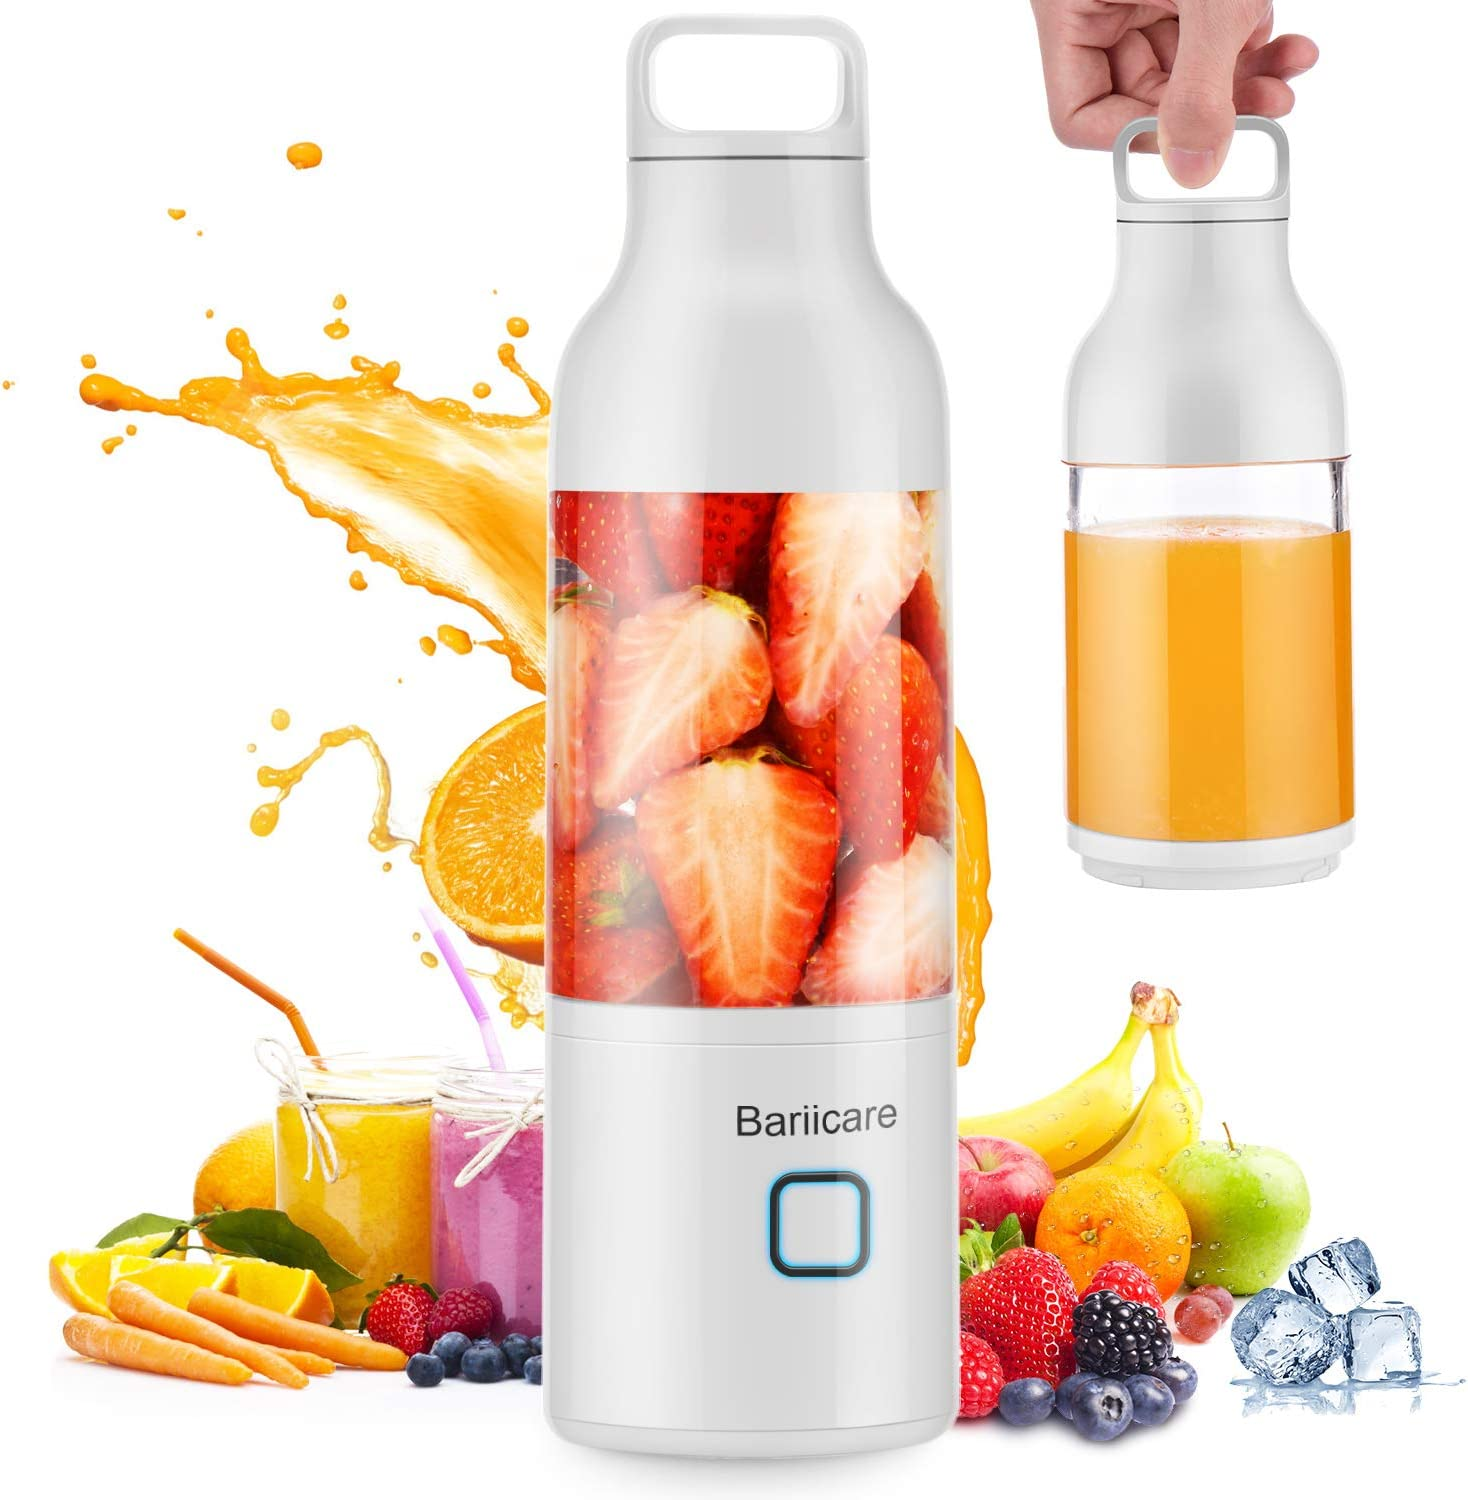 Portable Blender, [Updated 2020 Version] Bariicare Smoothie Blender with 4 Blades, 20 oz Travel Fruit Mixer Machine, 4000 mAh USB Rechargeable Ice Blender Mixer for Home, Office, Sports, Outdoors